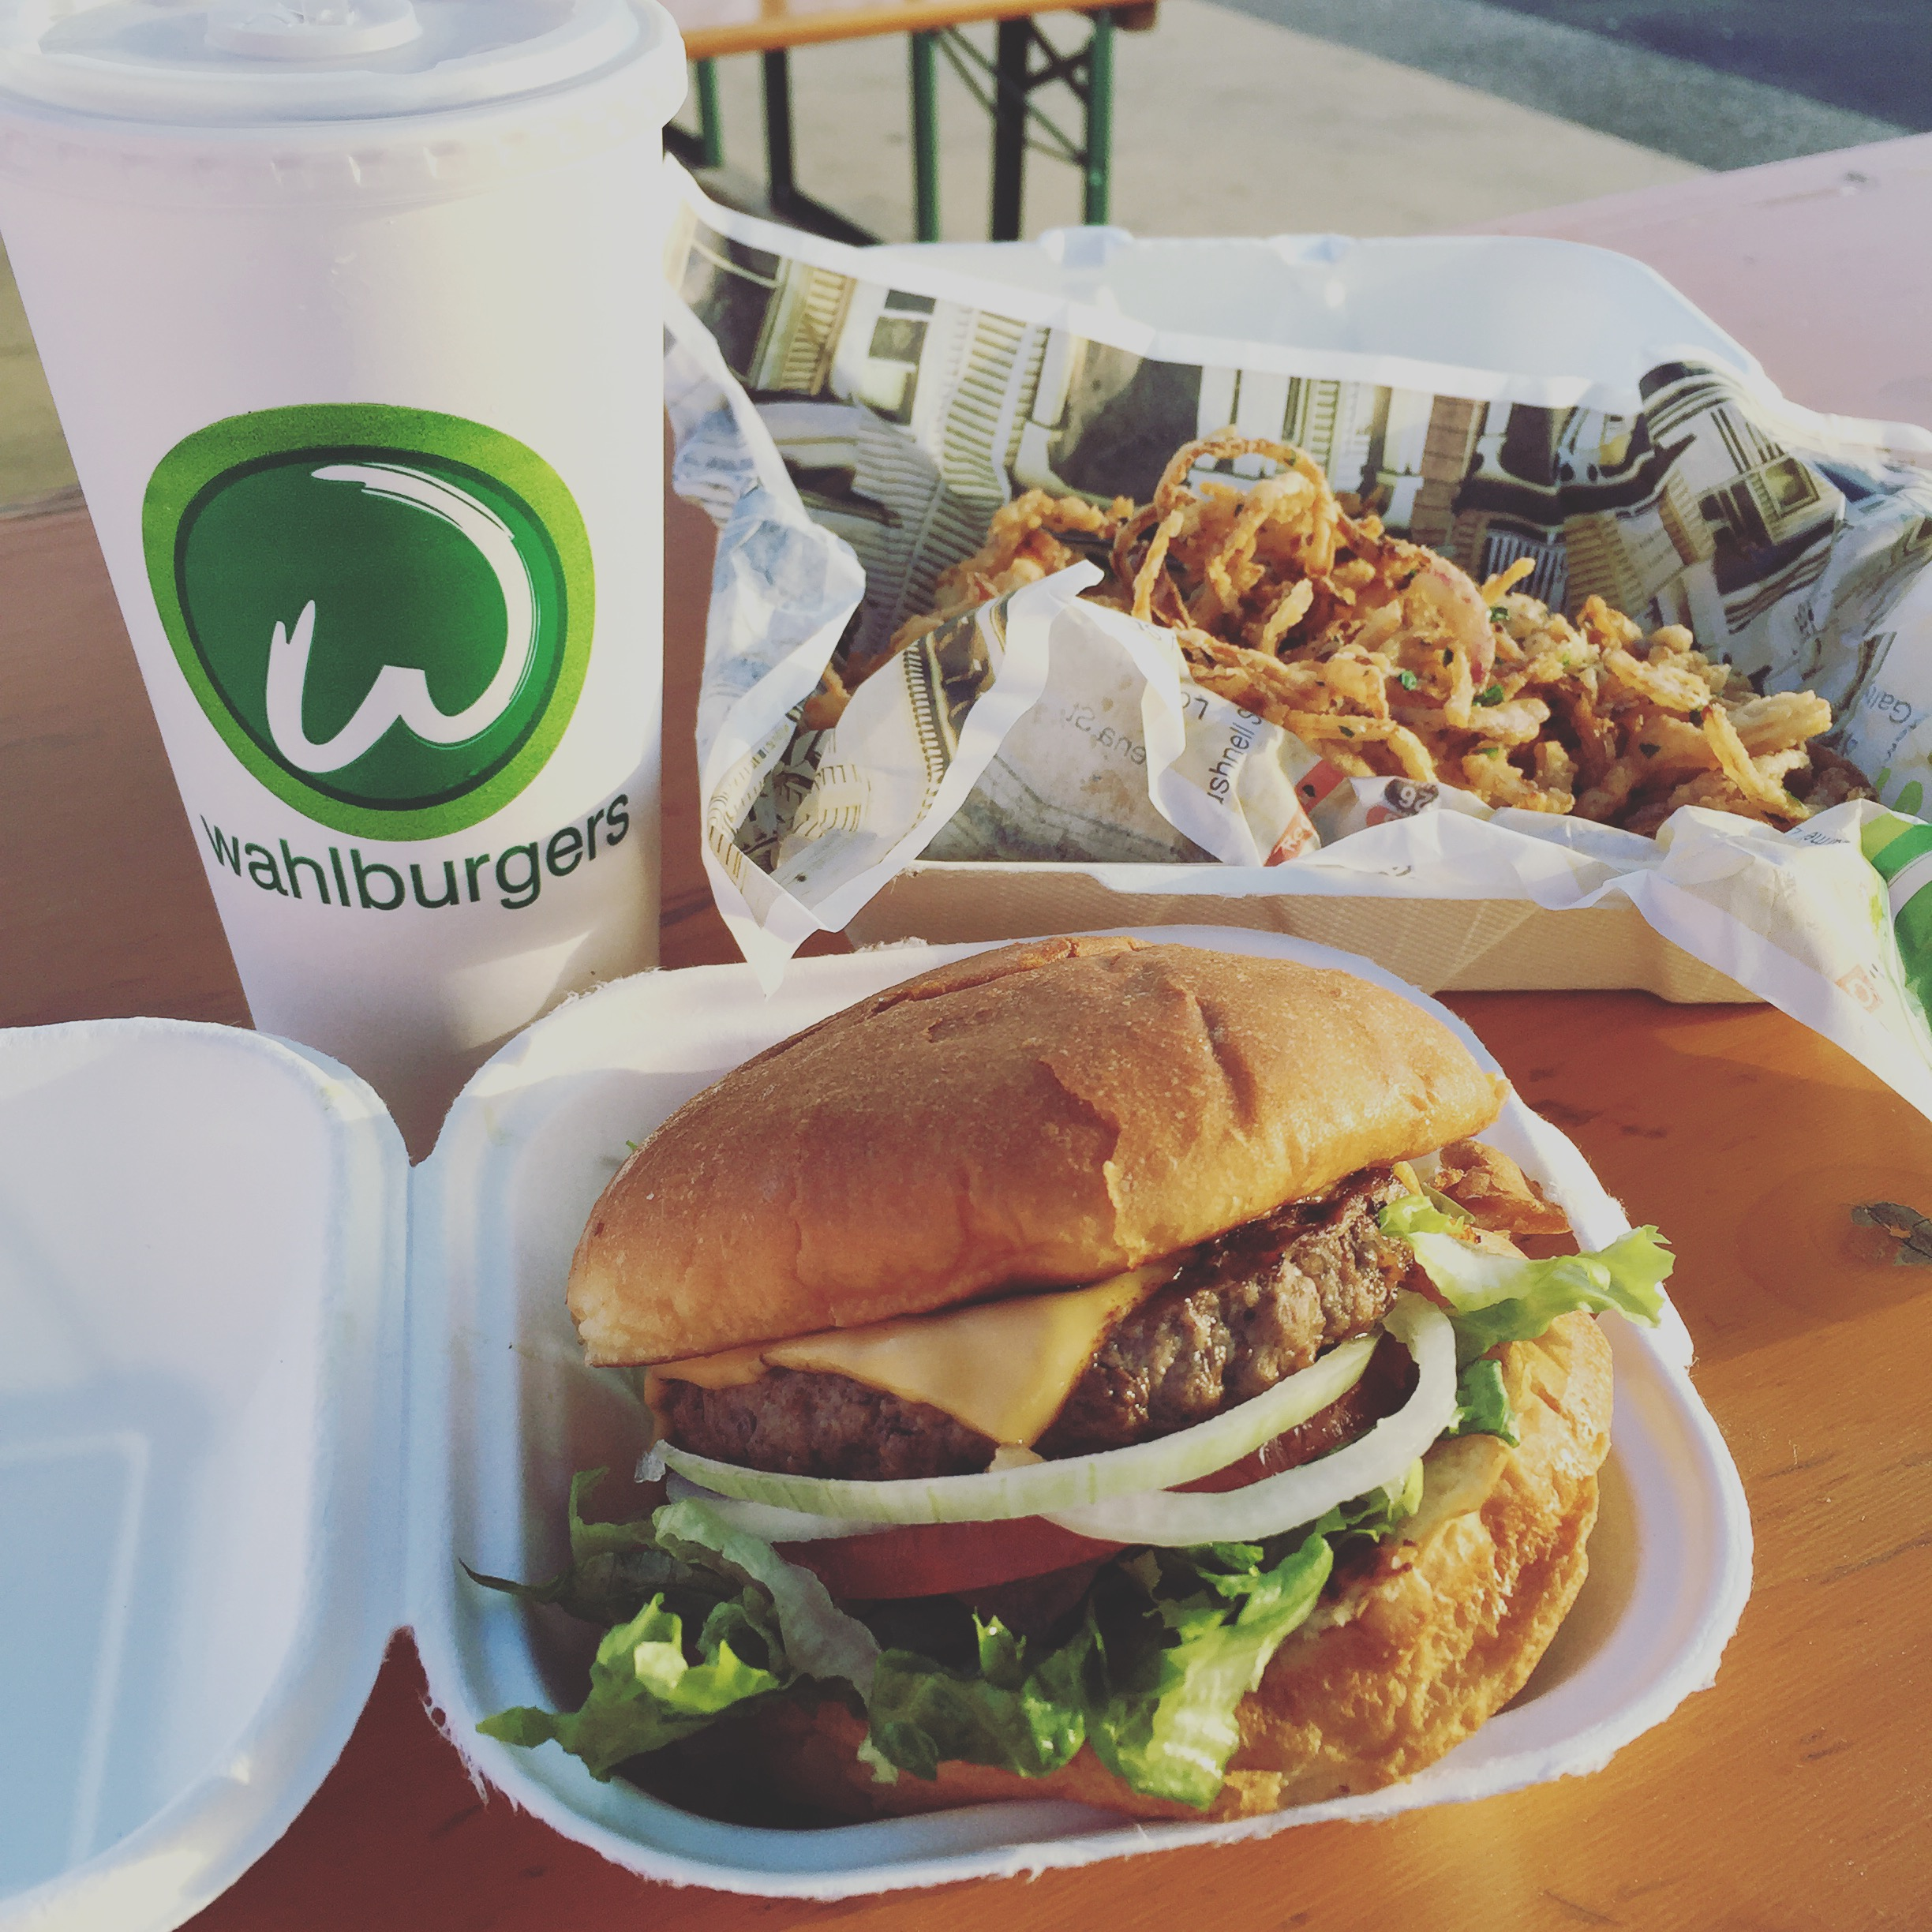 Hello, Wahlburgers!